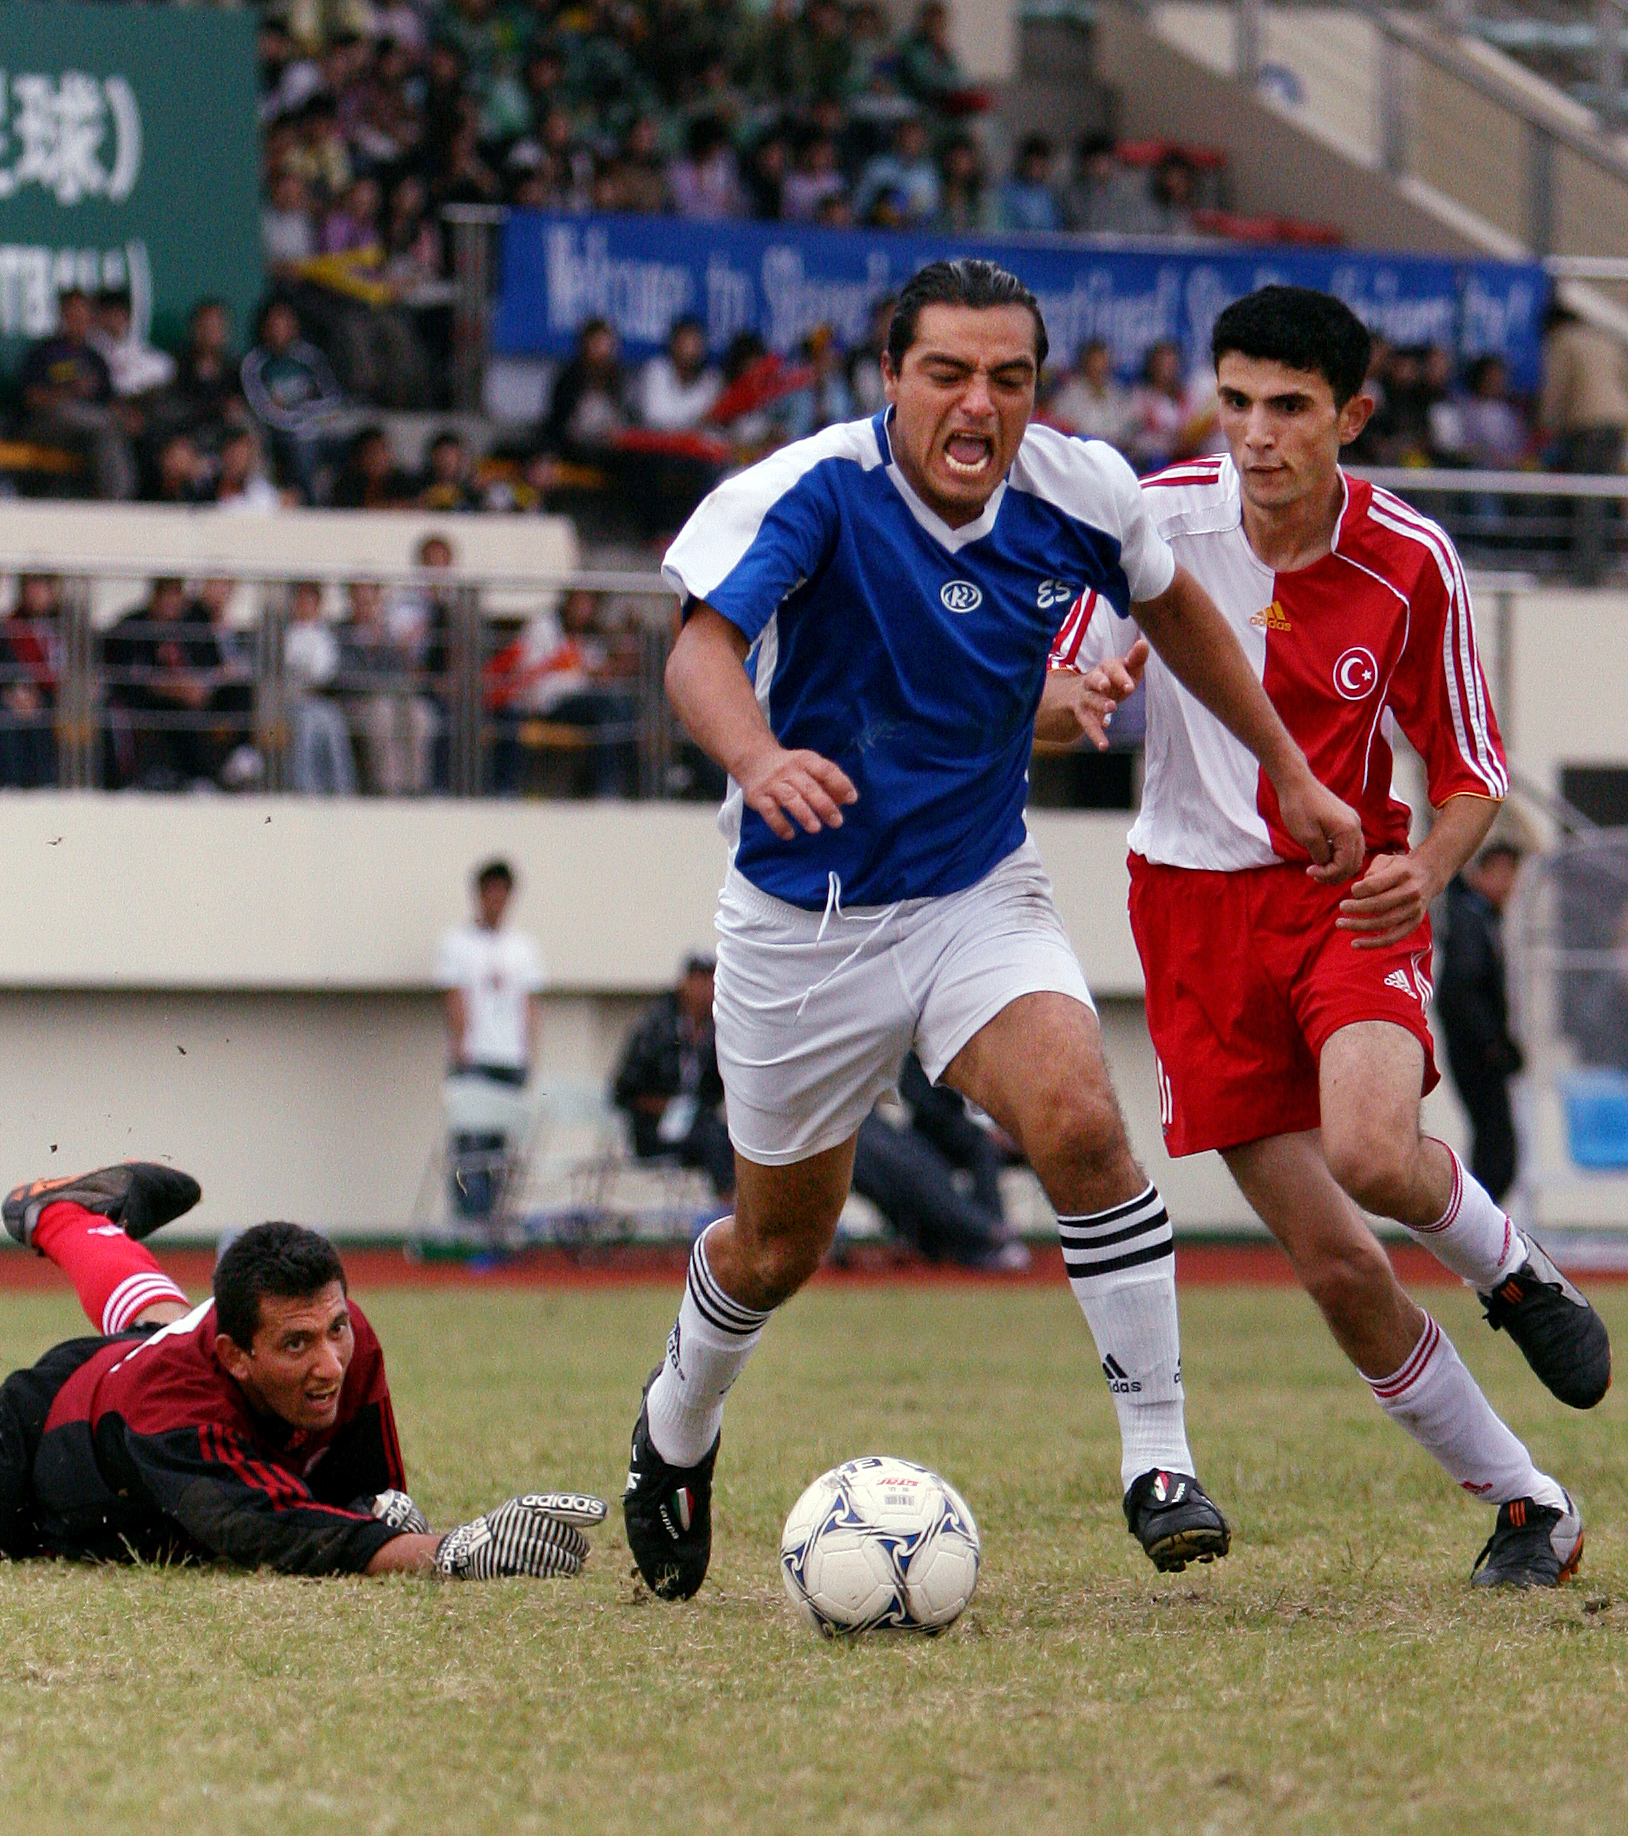 Gustavo Deras of El Salvador rushes past Turkey's Ismail Sari and Ozgur and Ozgur Tas in a match-up during the 2007 Special Olympic World Summer Games at Shanghai International Studies University Stadium.  El Salvador won the match.